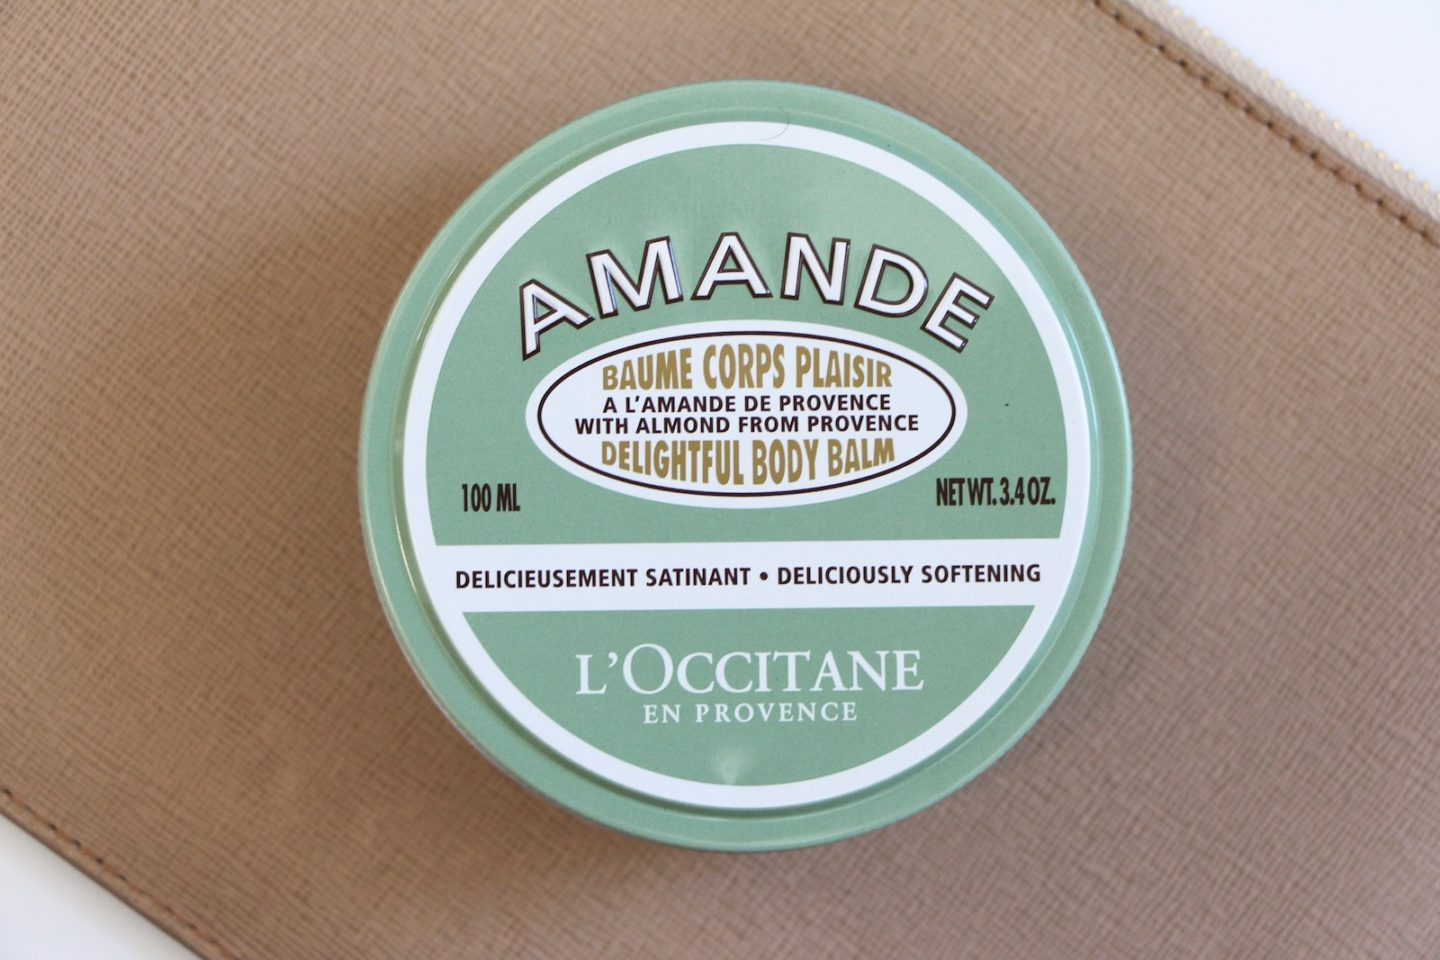 l'occitane amande body balm body cream review